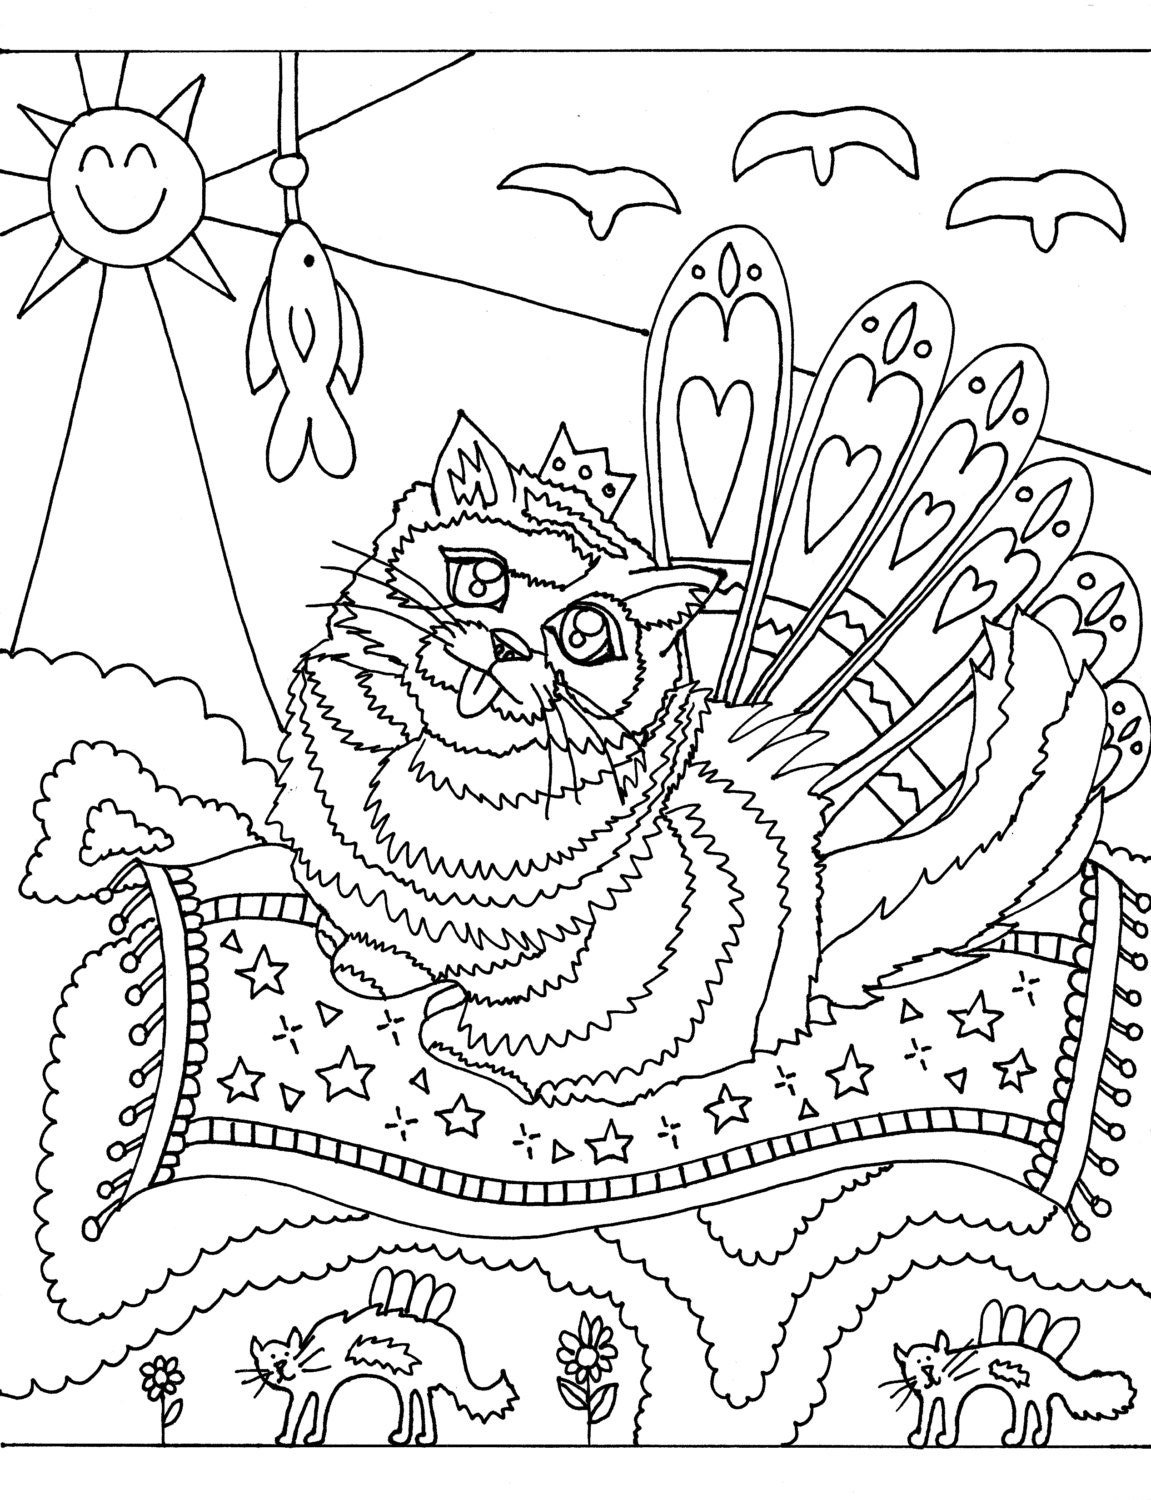 Book Coloring Downloadable Page